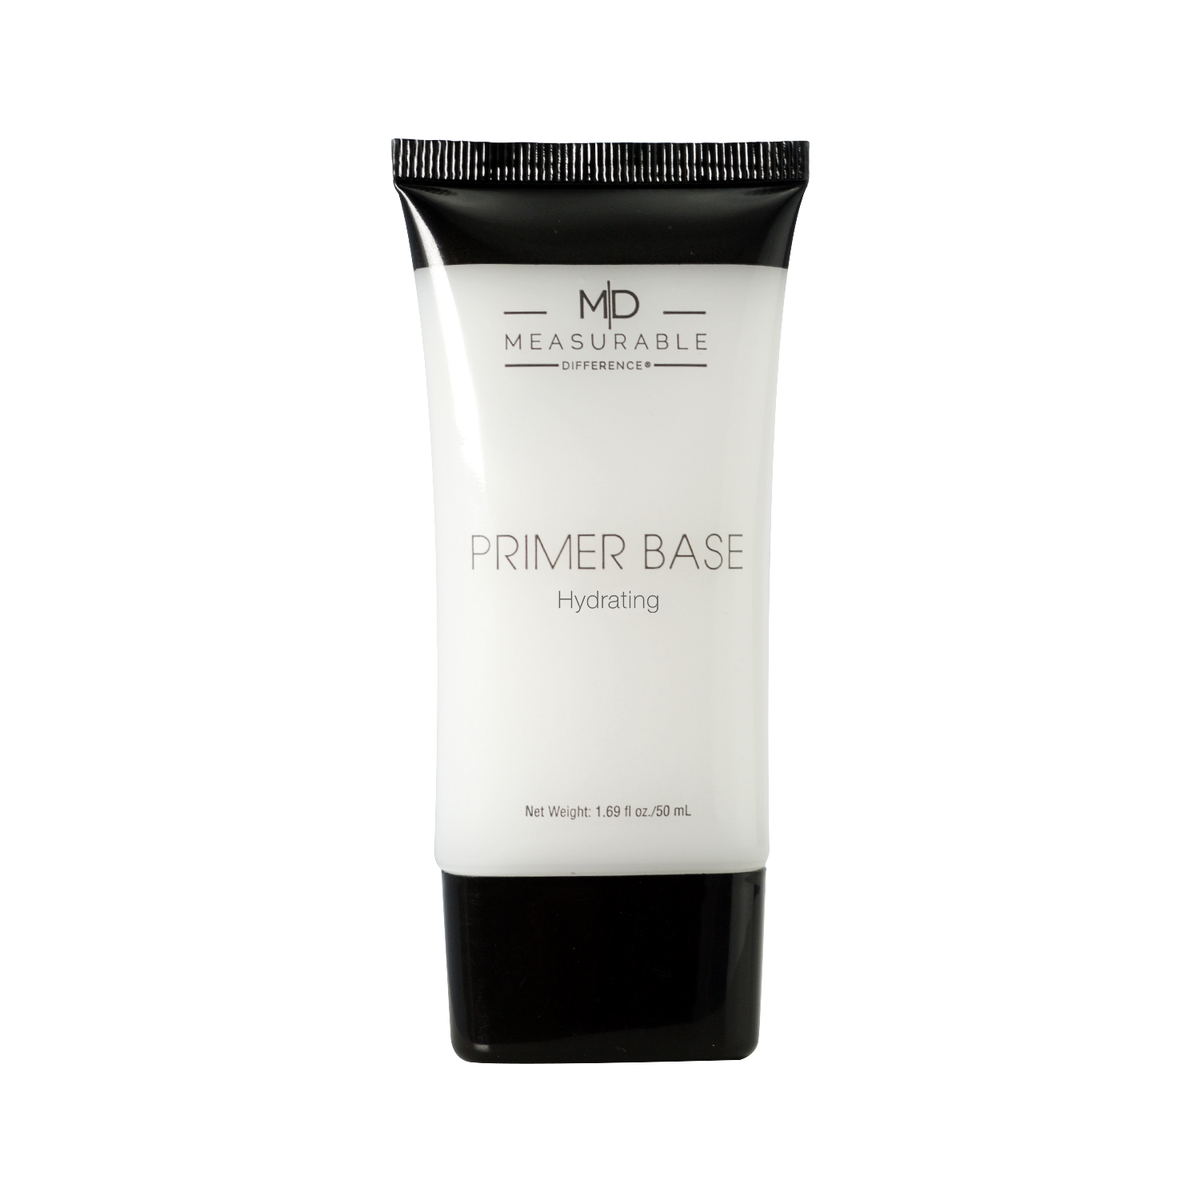 Primer Base Hydrating